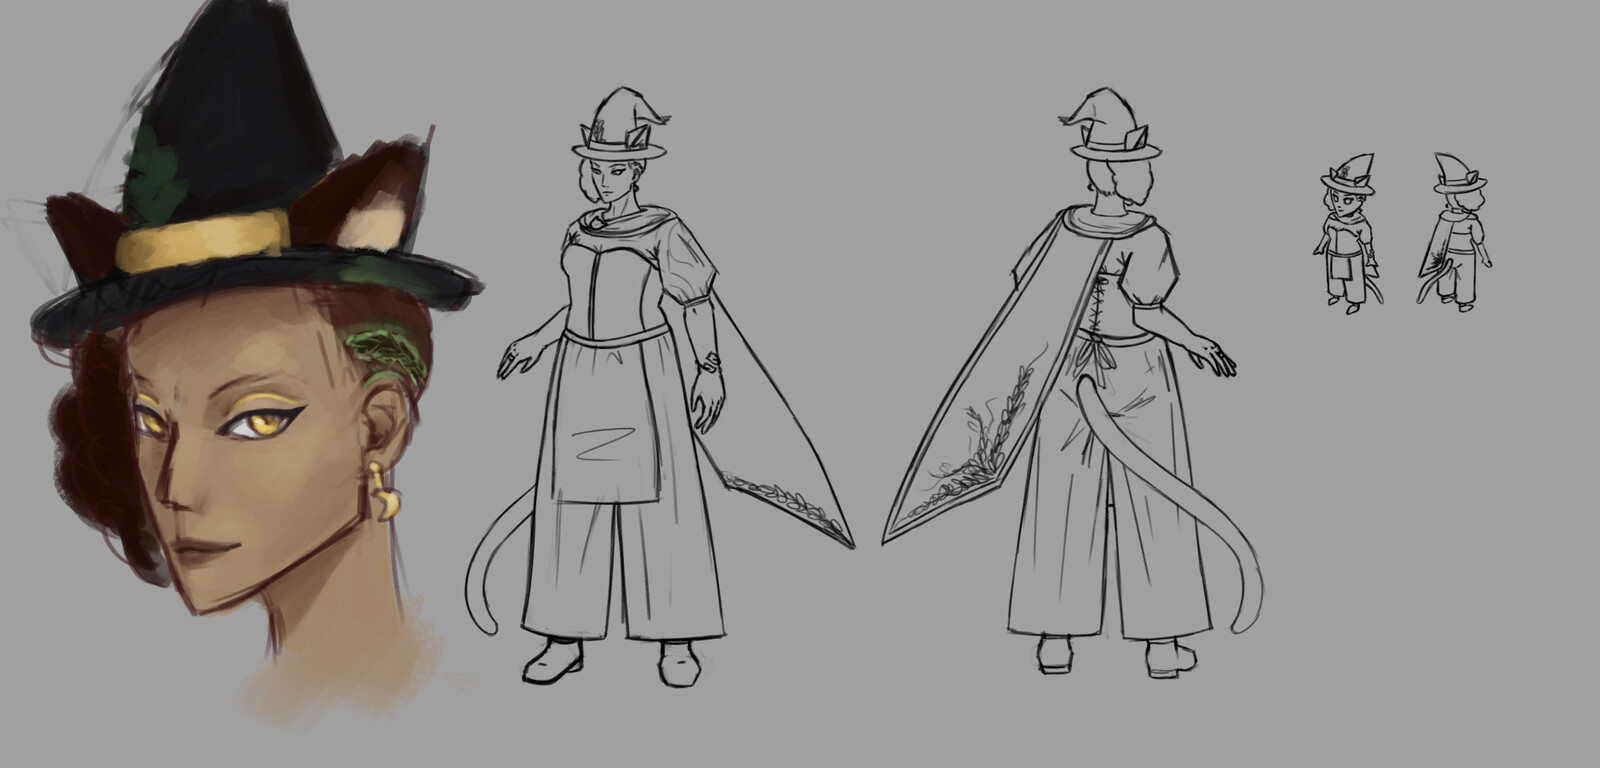 First design - when the main character was a witch, instead of a barista